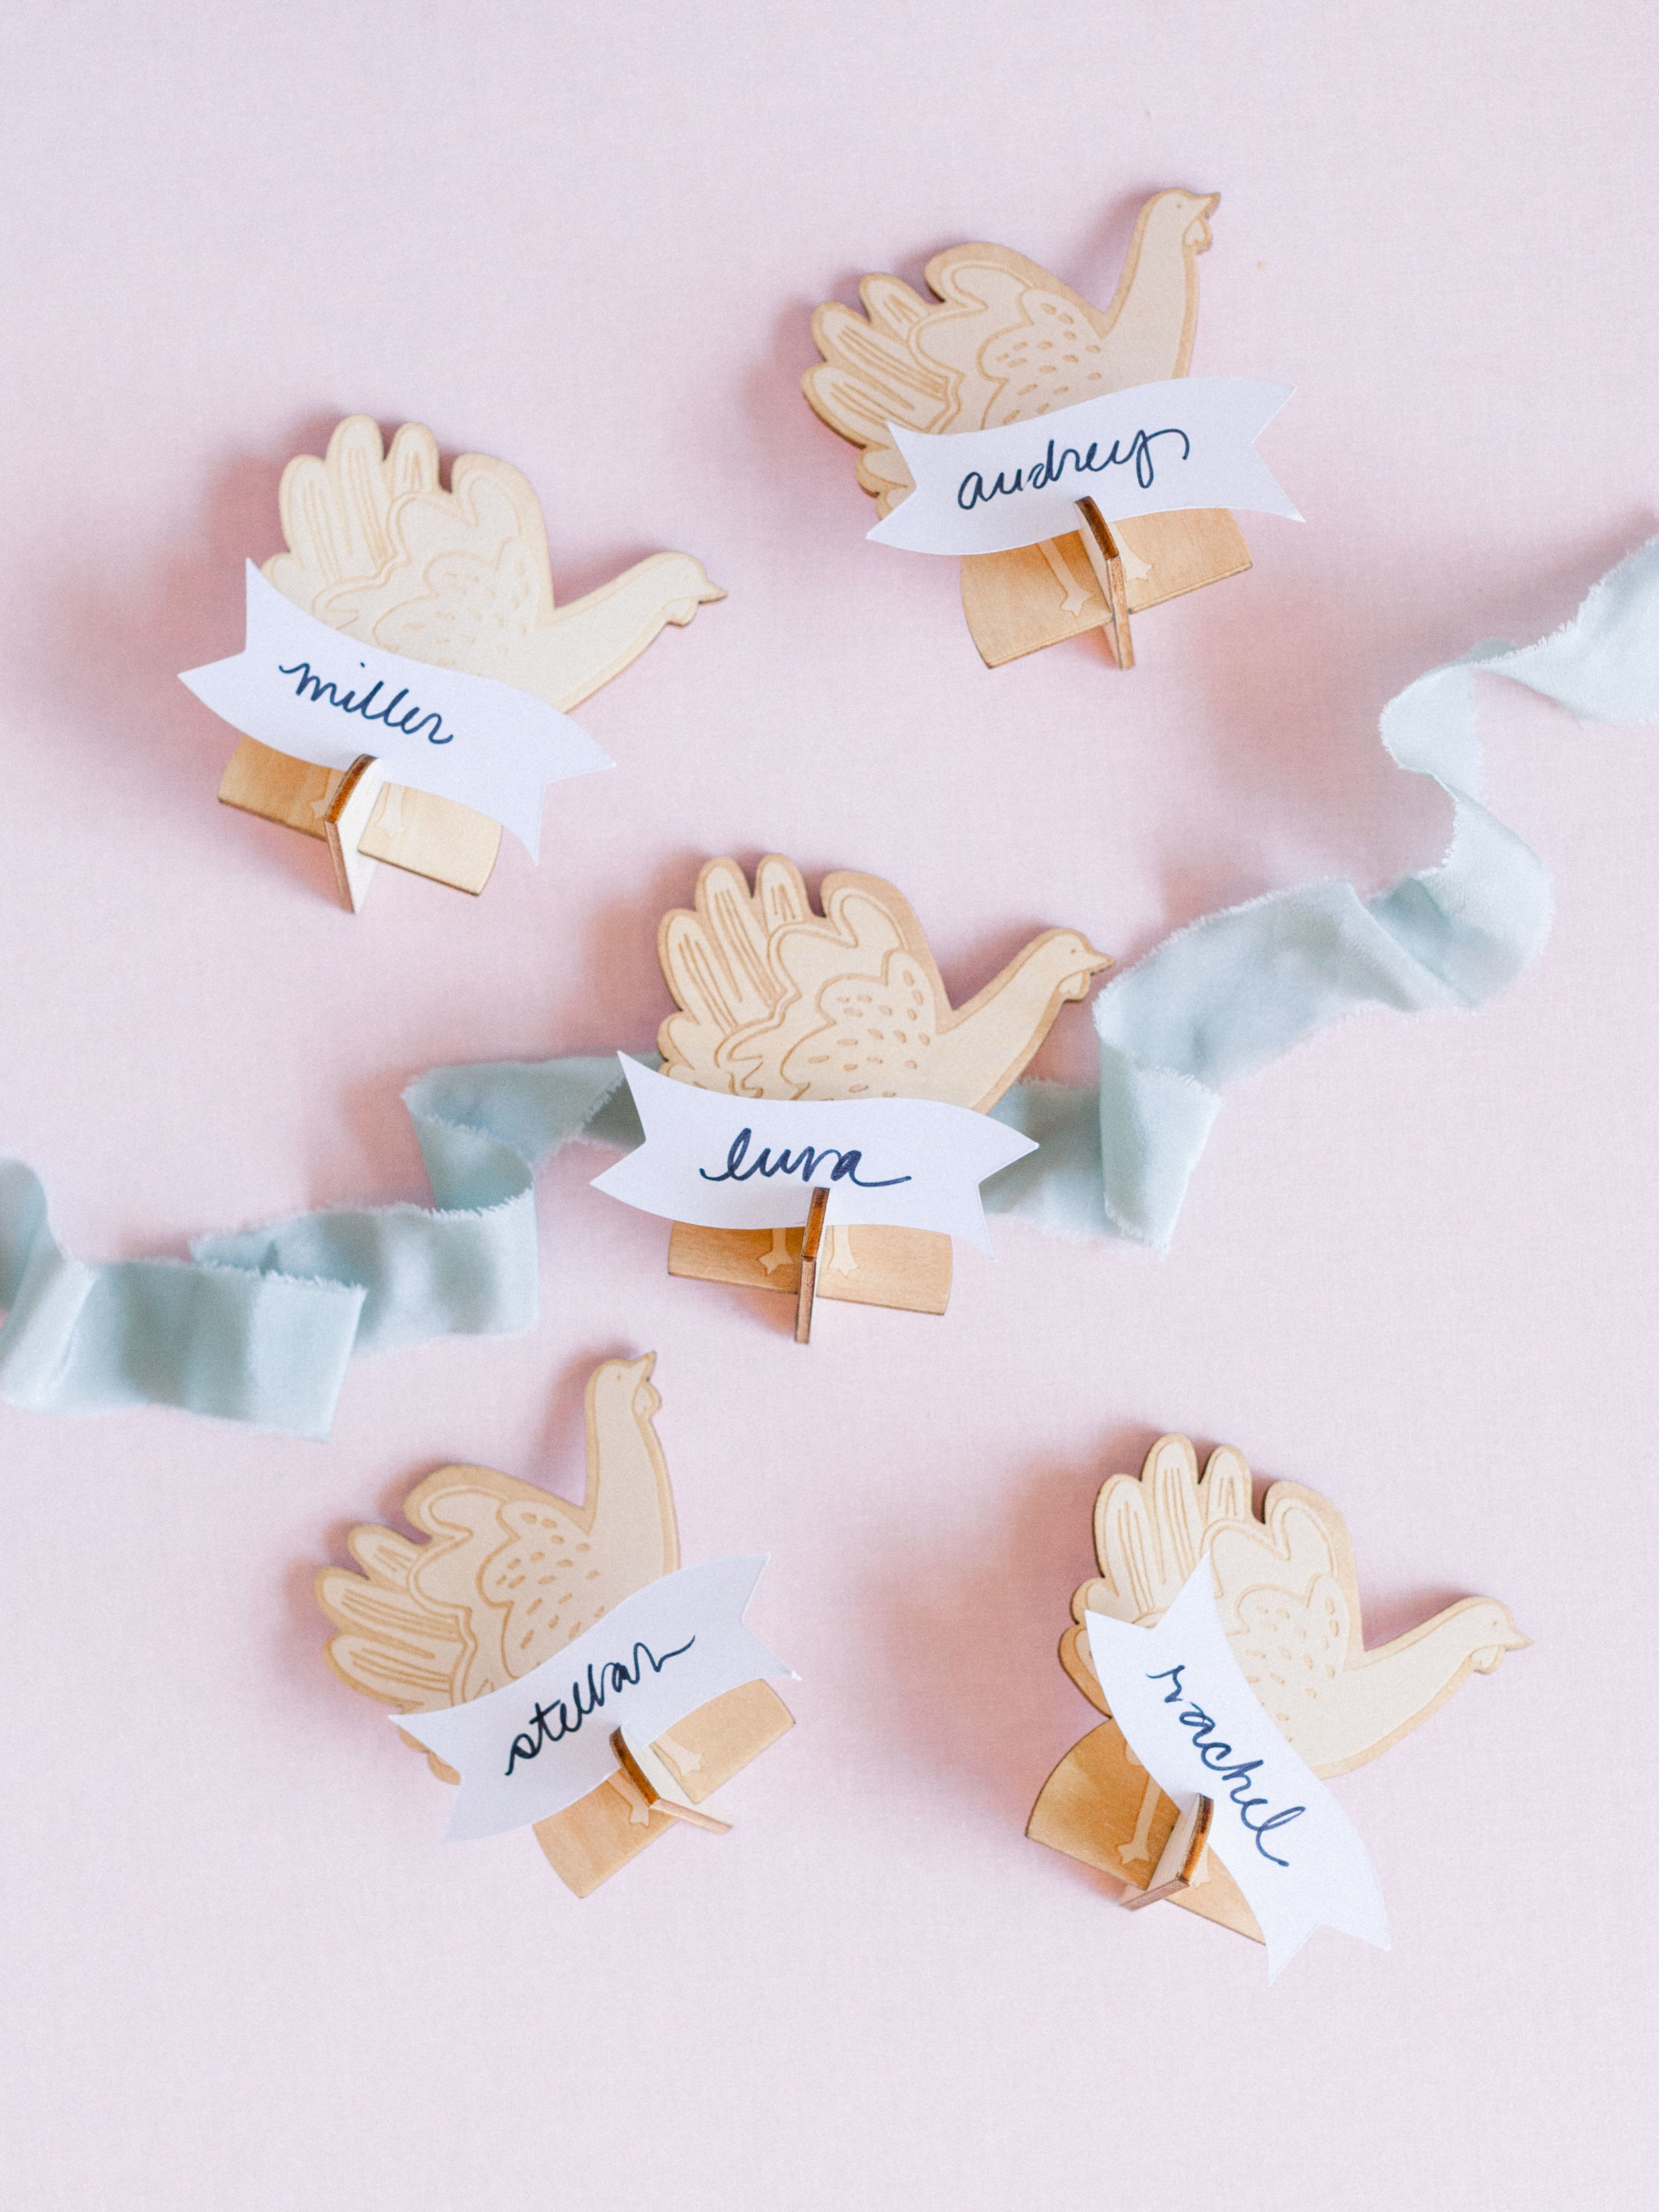 Oui Party Thanksgiving Place Cards.jpg